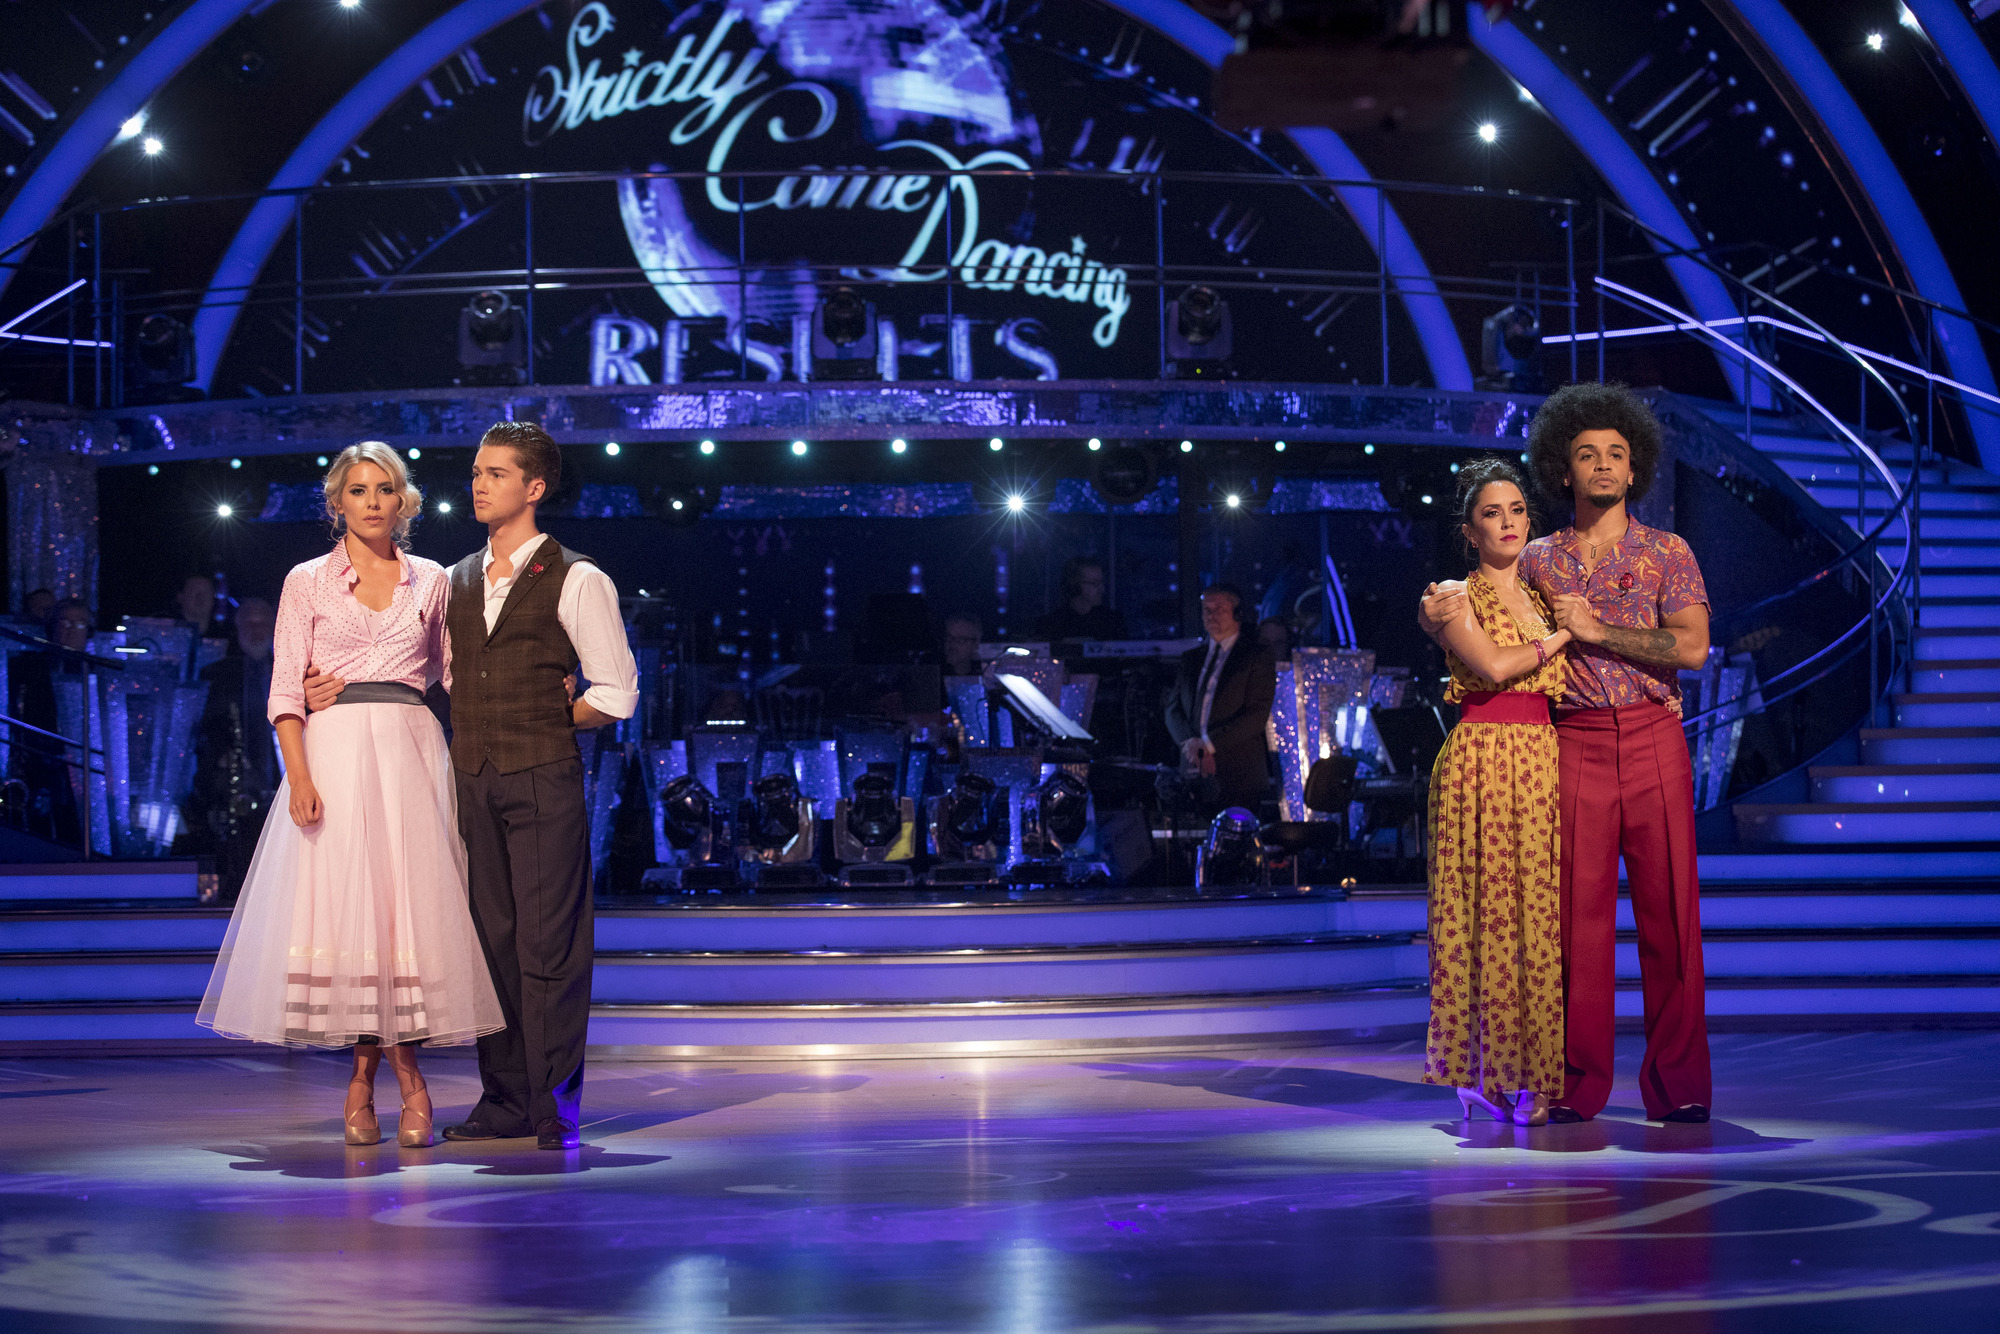 Aston Merrygold's early Strictly Come Dancing exit hailed the 'biggest shock in reality TV history'